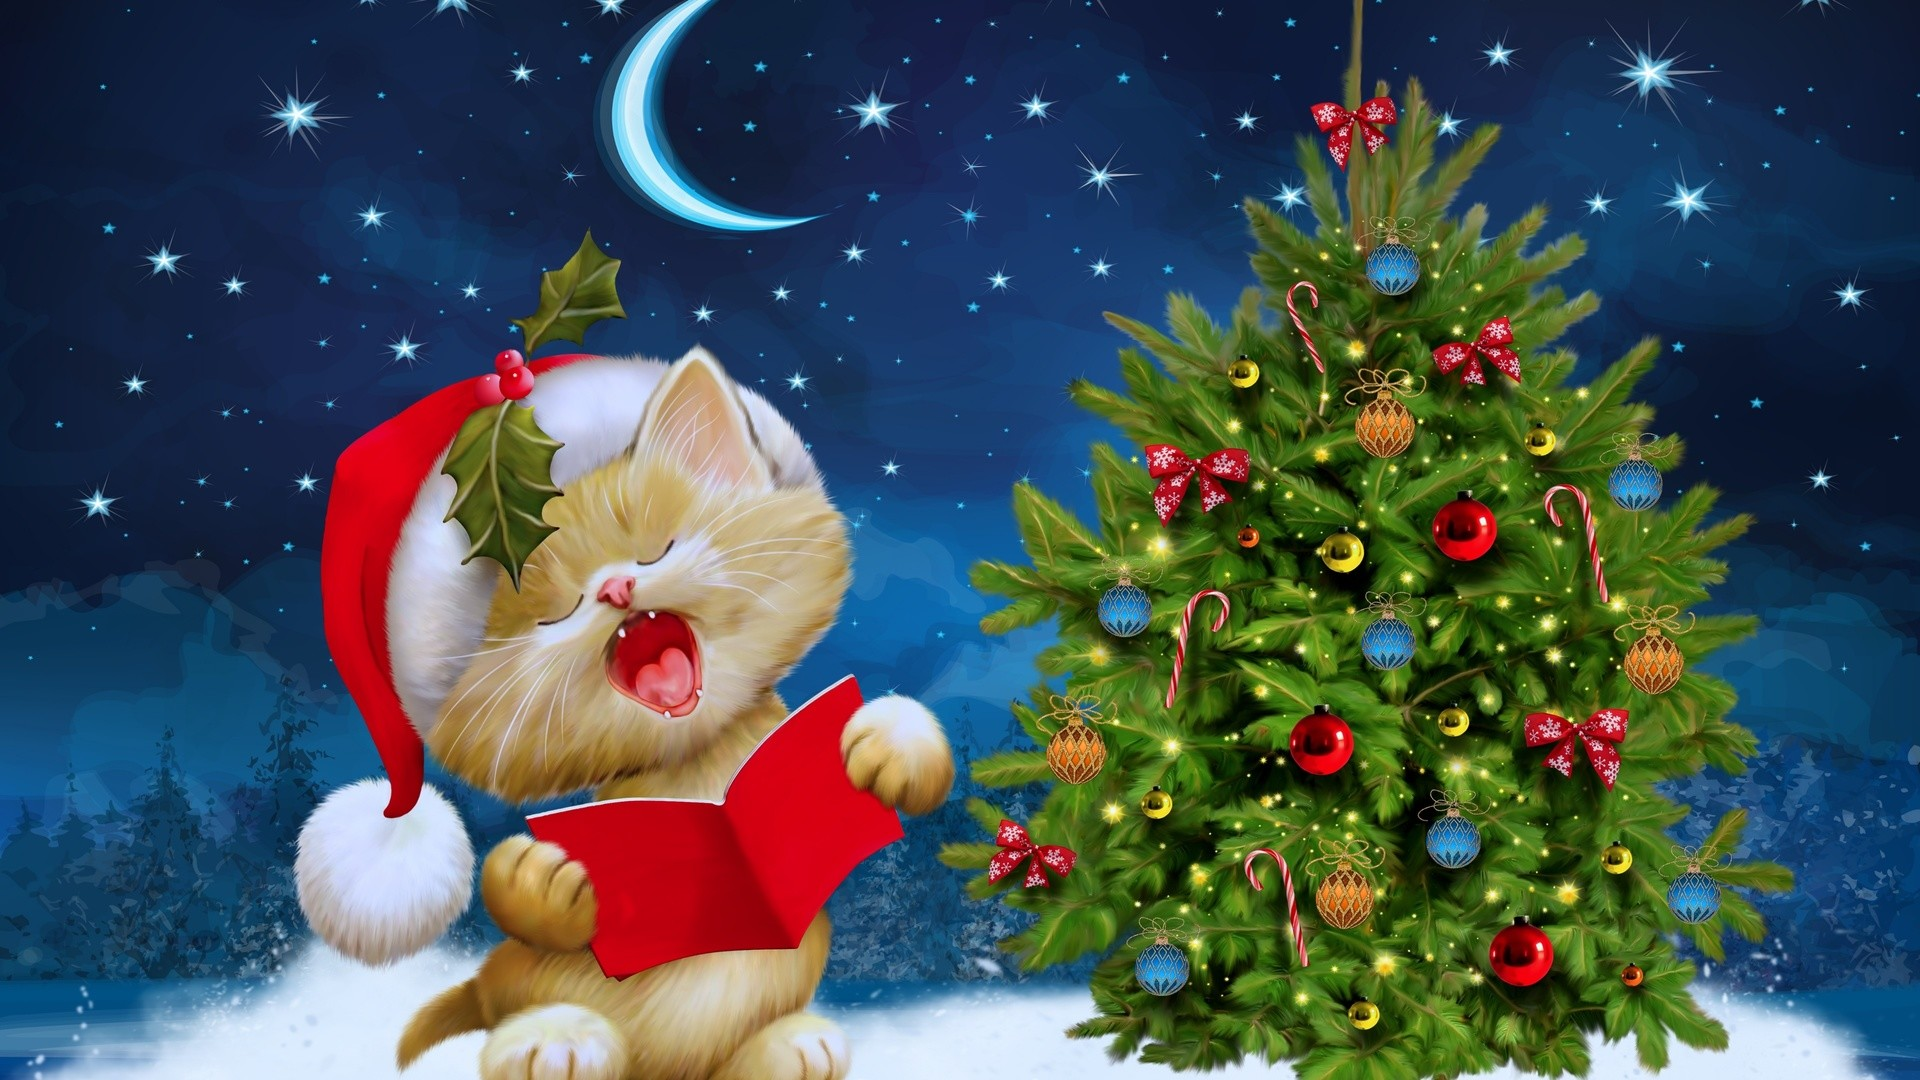 Christmas HD Wallpaper 1080p 1920x1080 (72+ Images